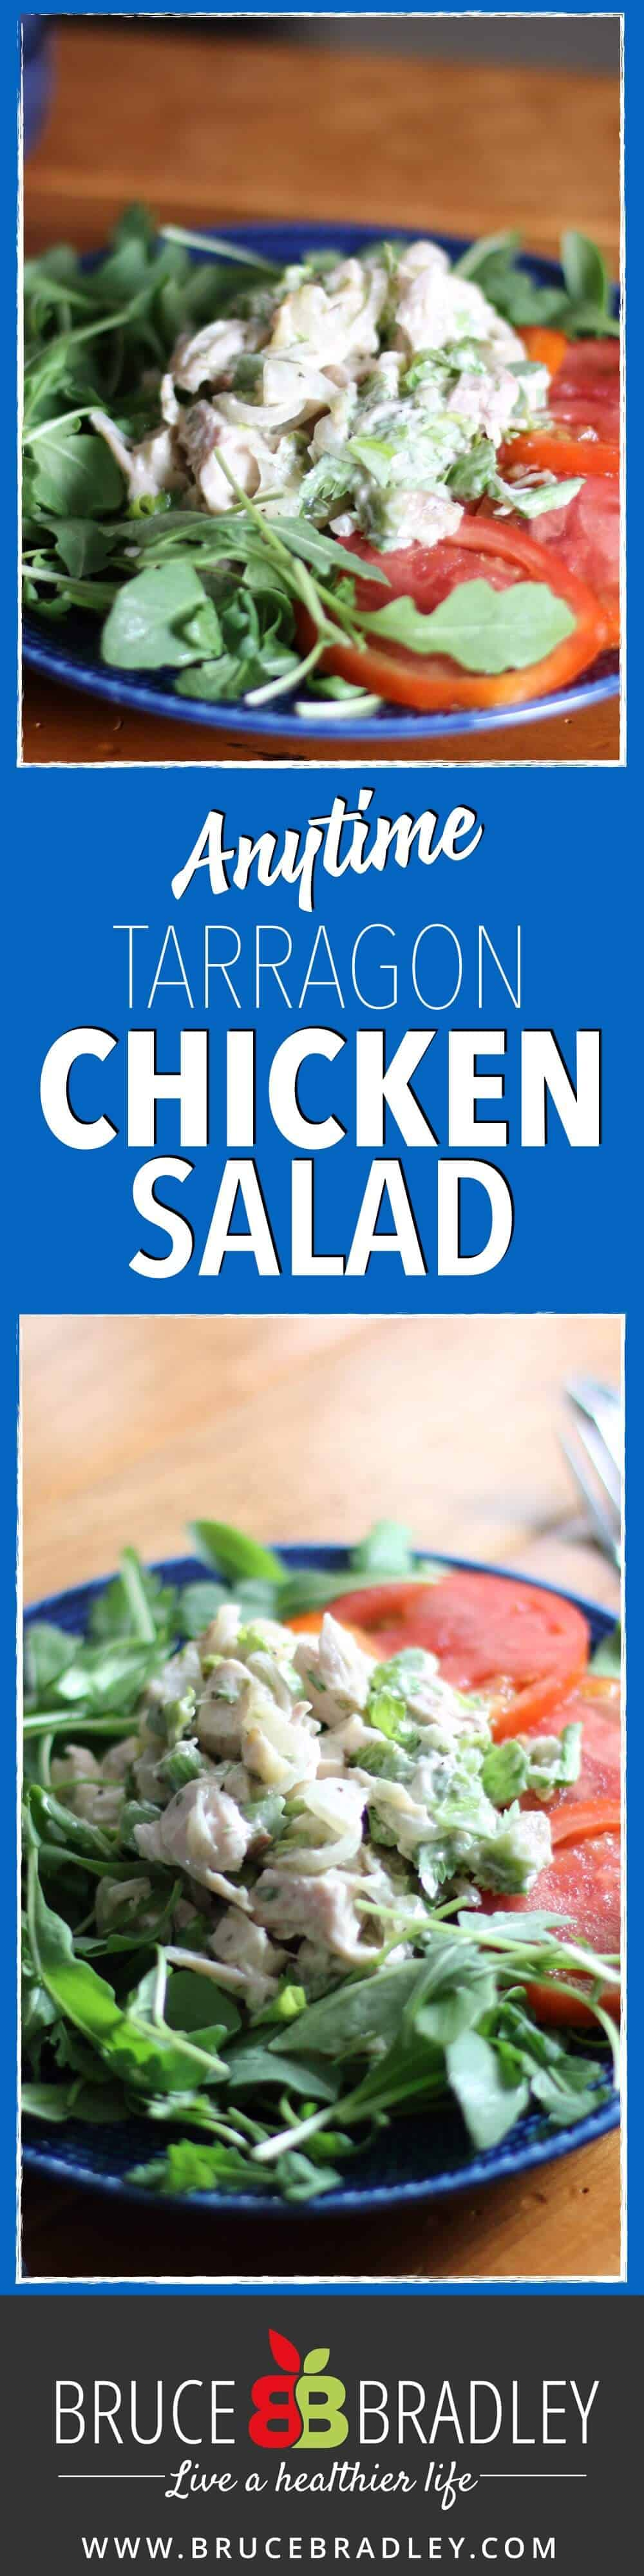 Bruce Bradley's Anytime Tarragon Chicken Salad recipe is a delightful blend of herbs, celery and has both mayo and mayo-free options.